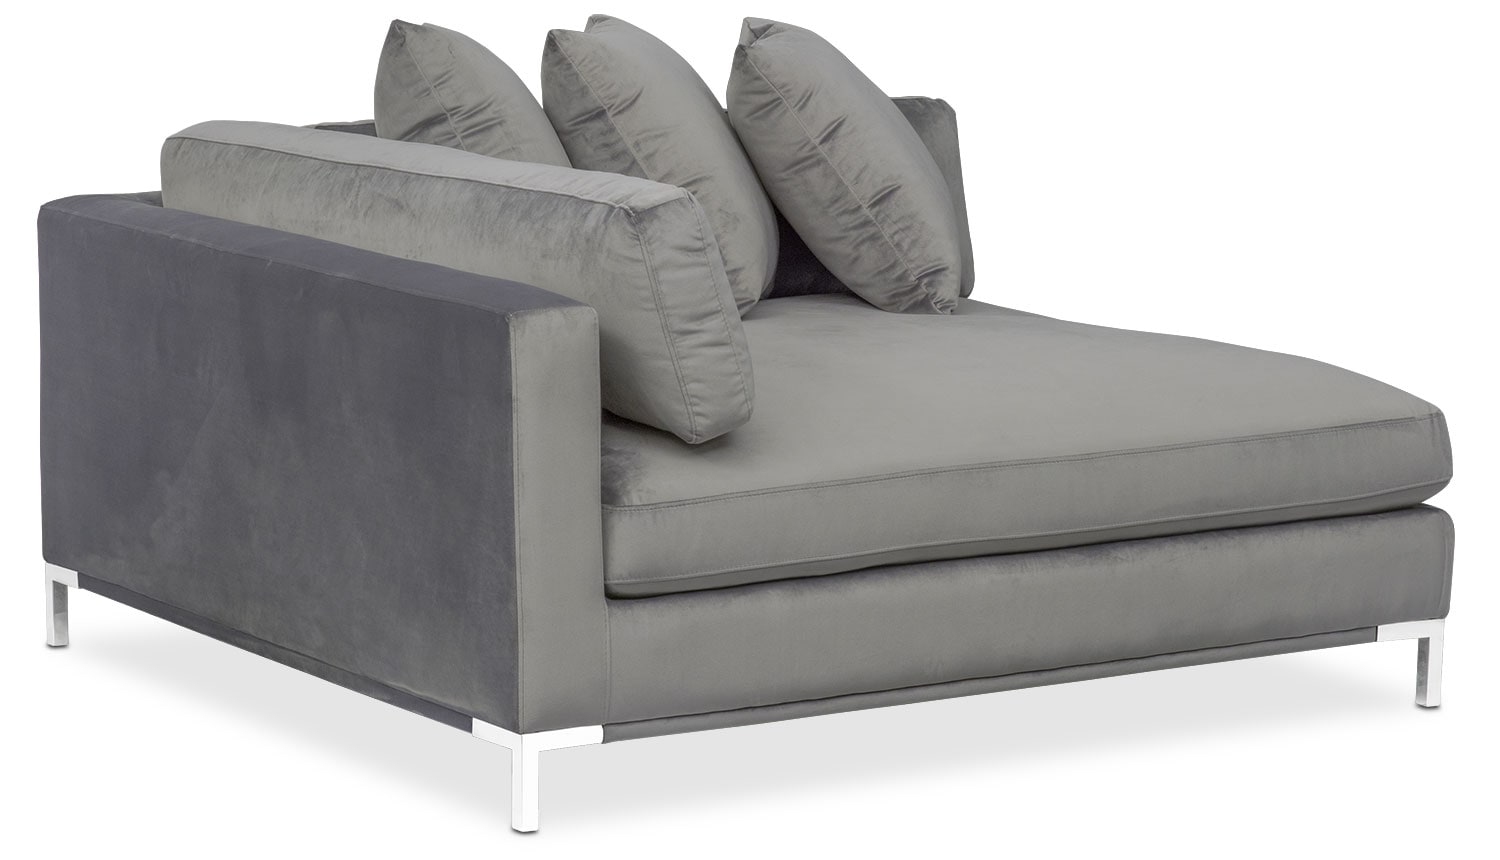 Living Room Furniture   Moda Corner Sofa   Gray